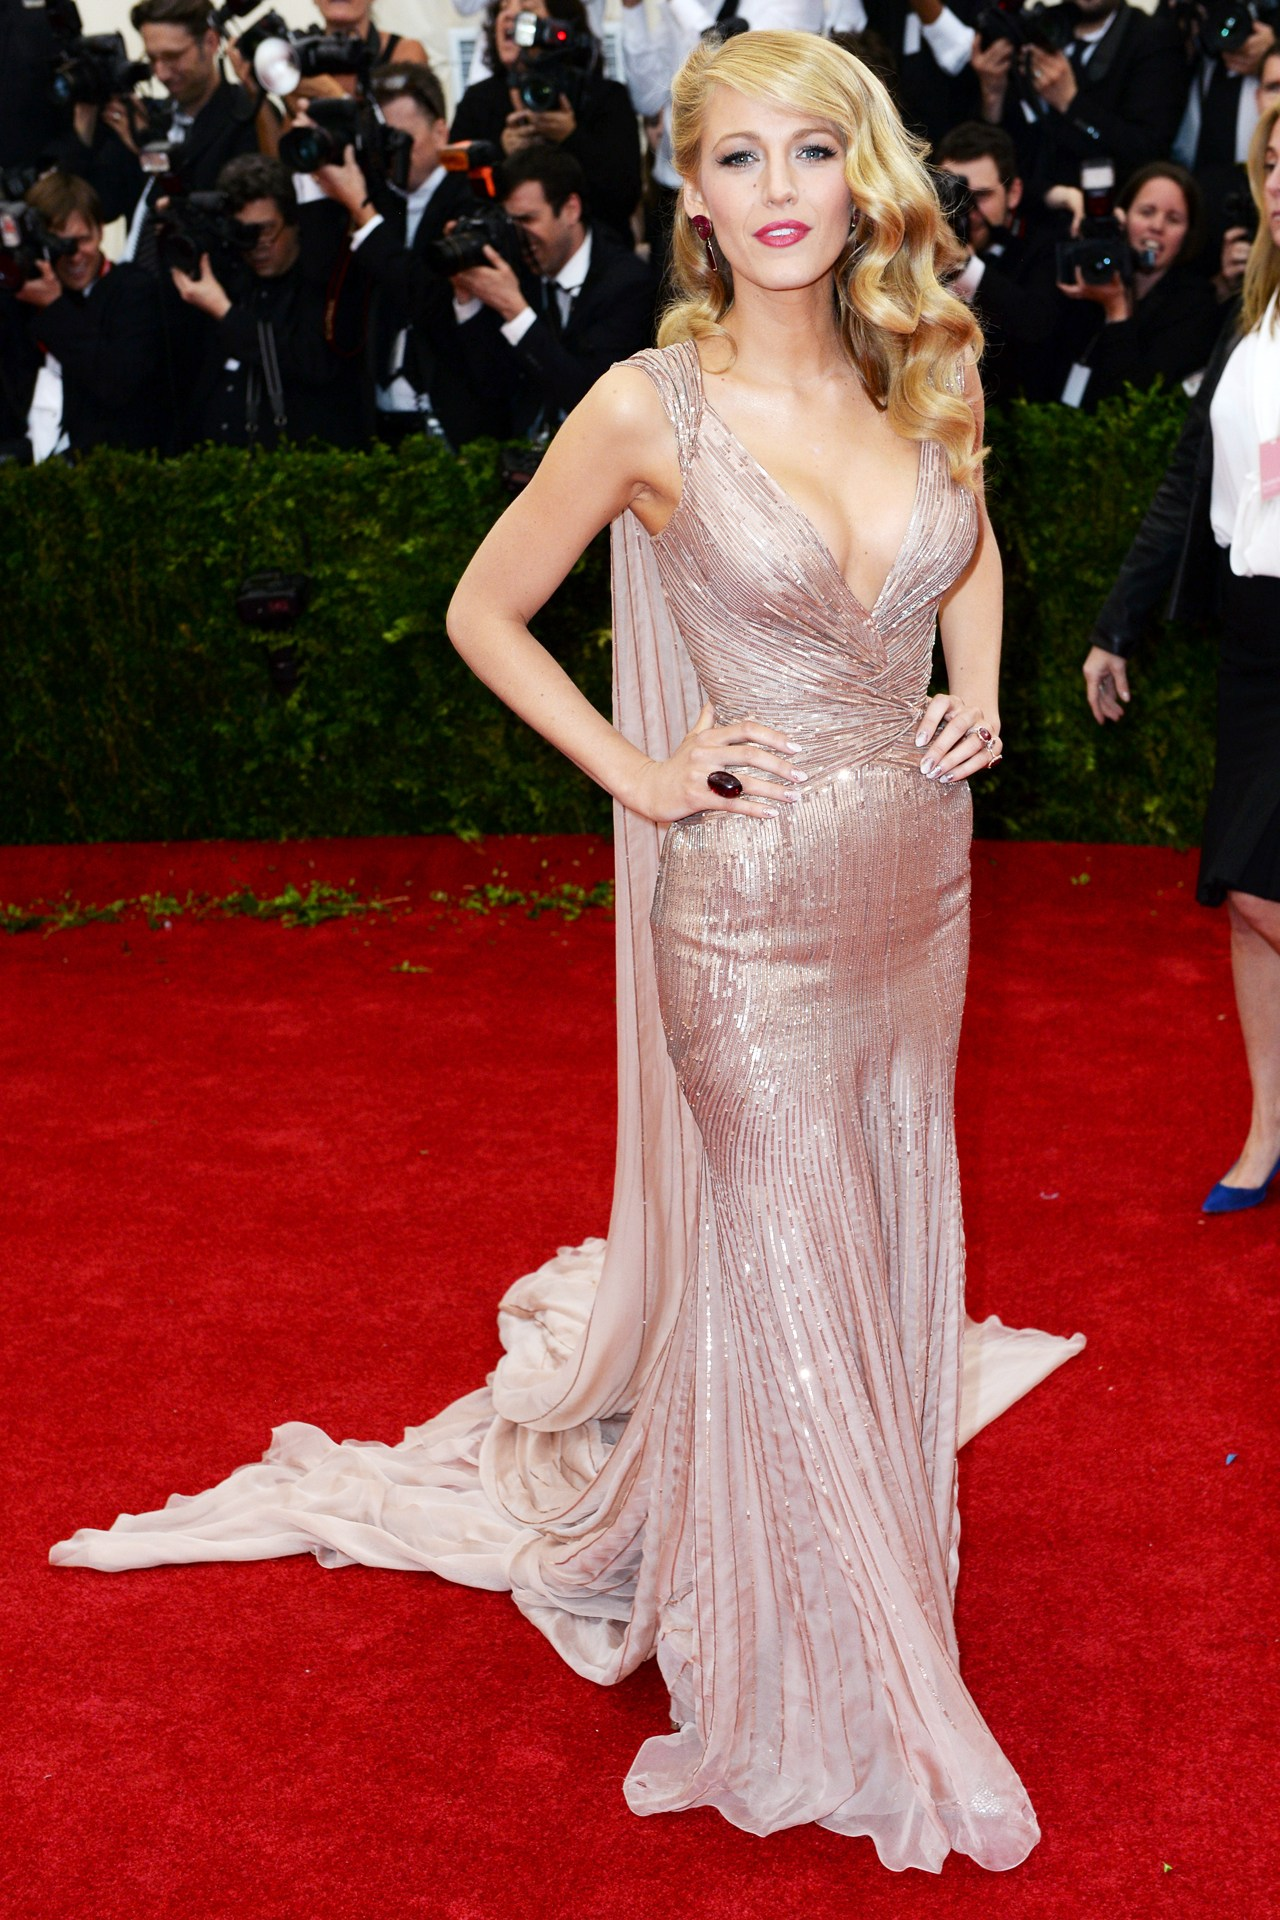 Blake Lively wore a custom-made Gucci Première gown.